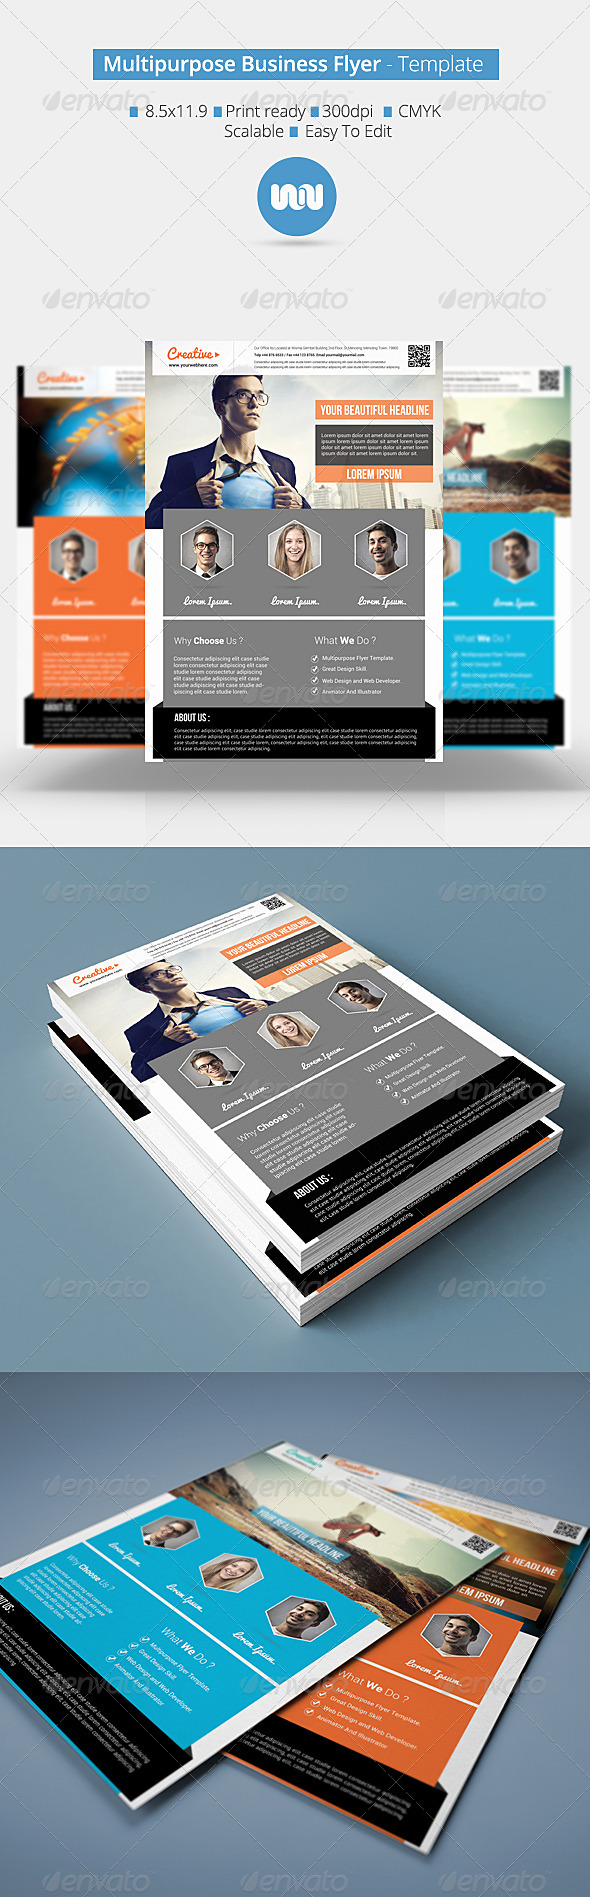 multipurpose-template